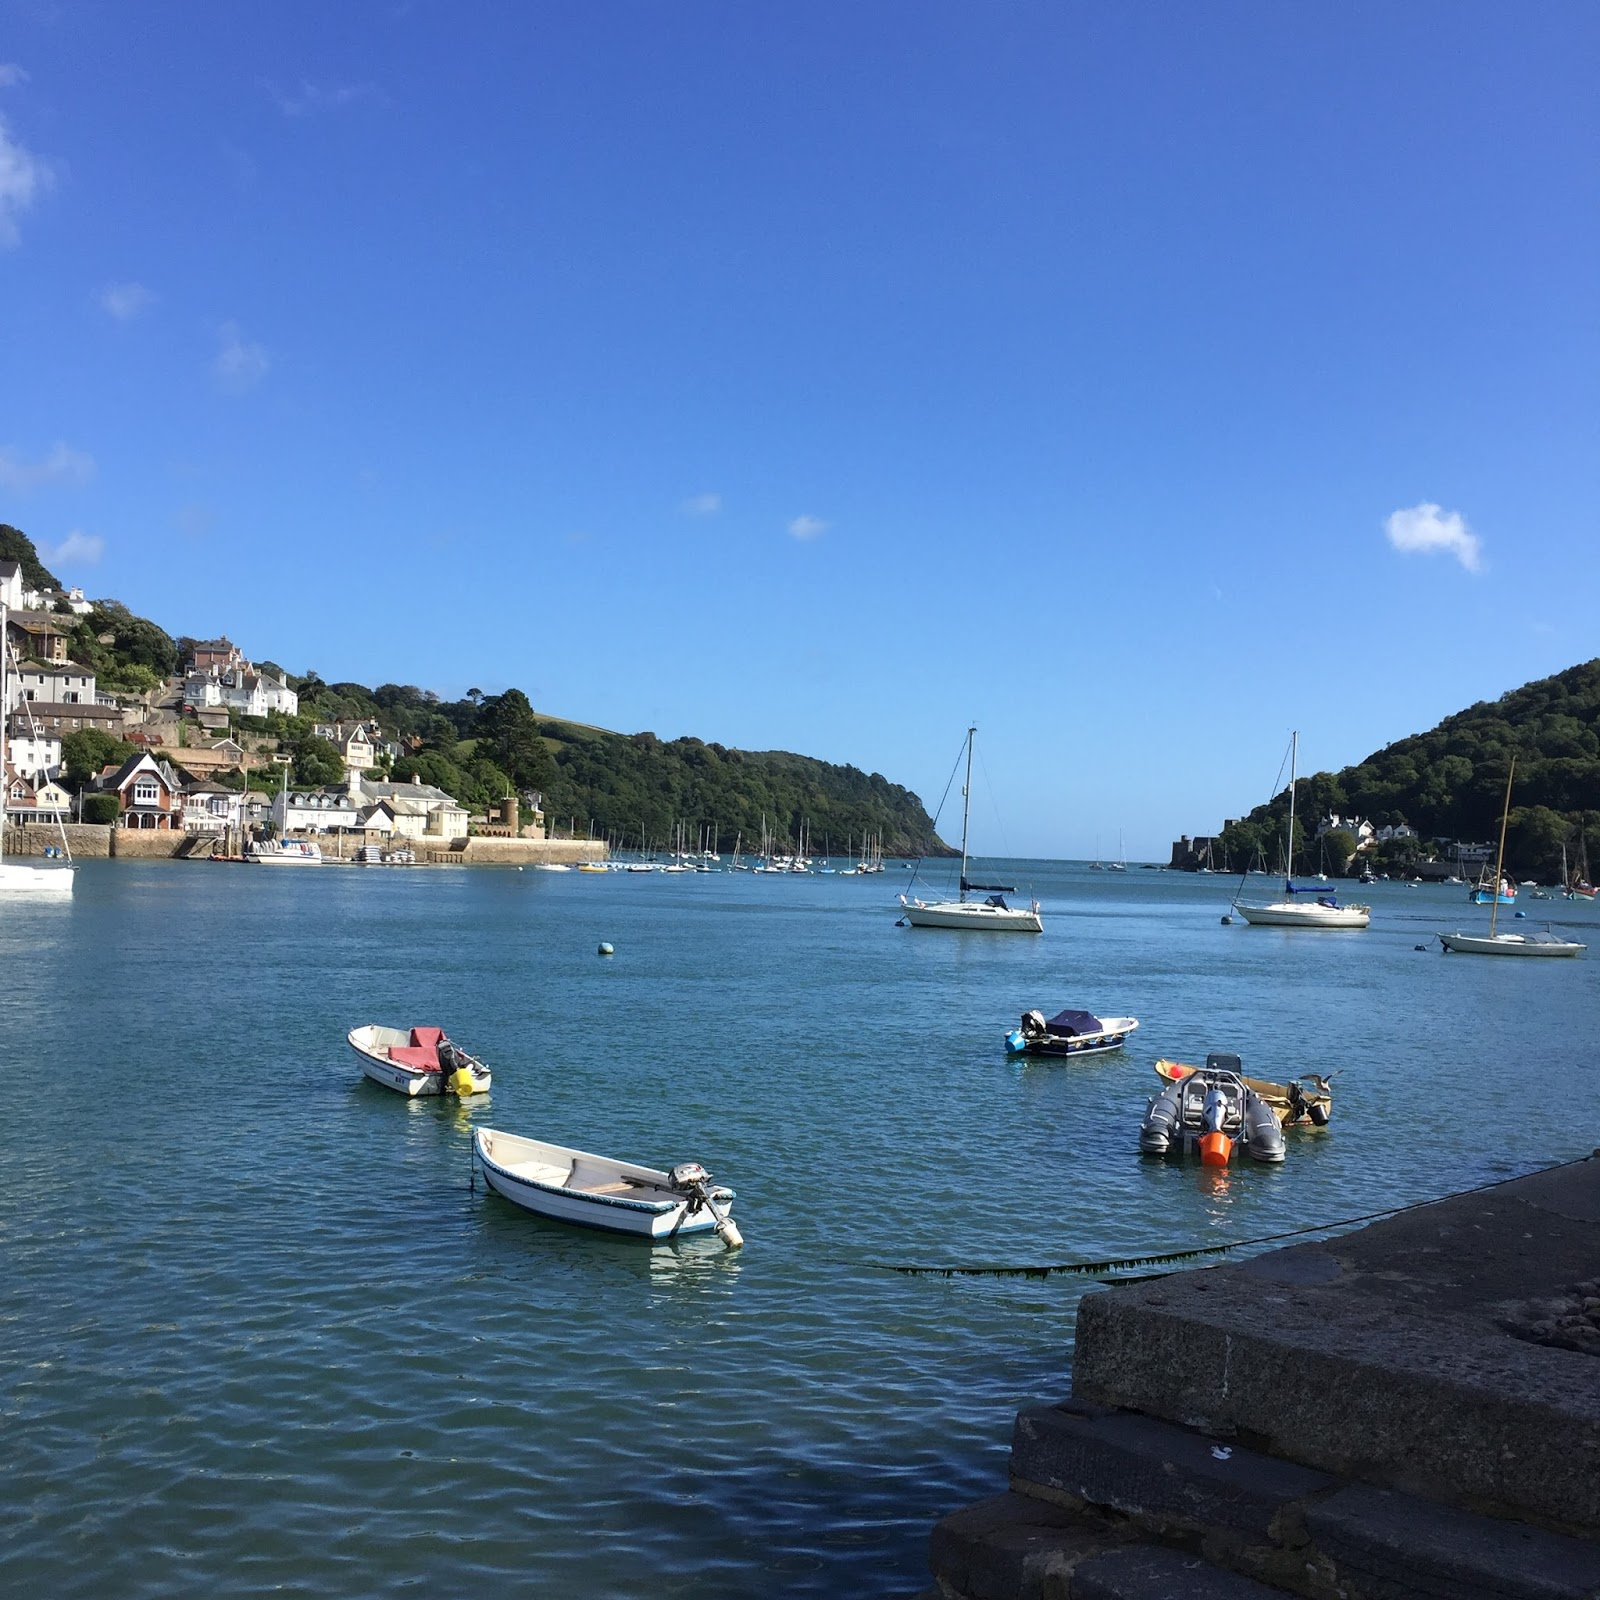 Boats at Dartmouth